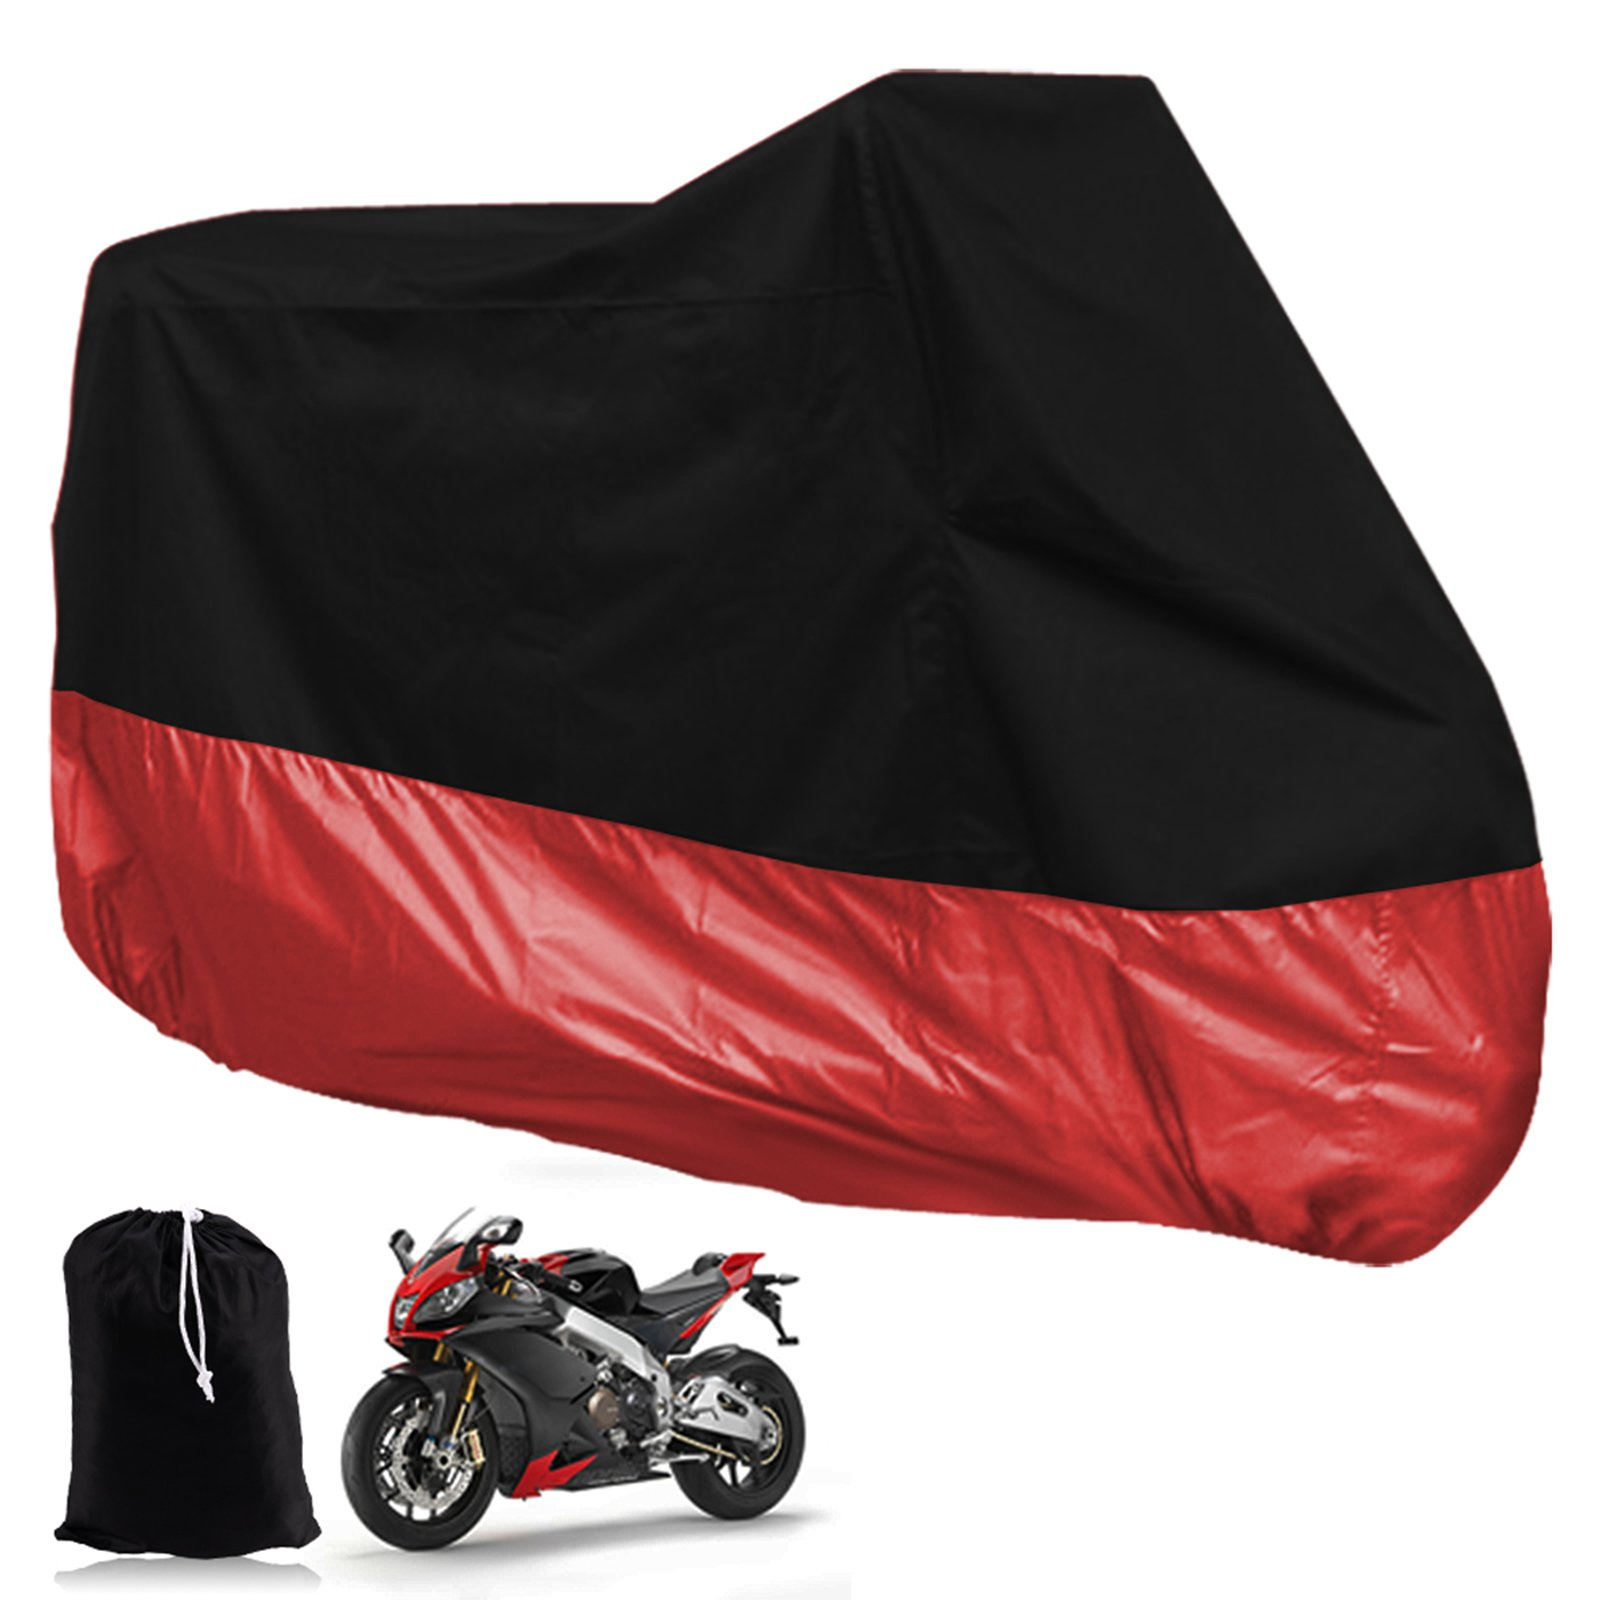 TARP COVER MOTO Motorcycle Cover scooter bike ATV 245cm Size XL black red protection quad bike atv cover black waterproof four wheeler storage cover size l xxl xxxl